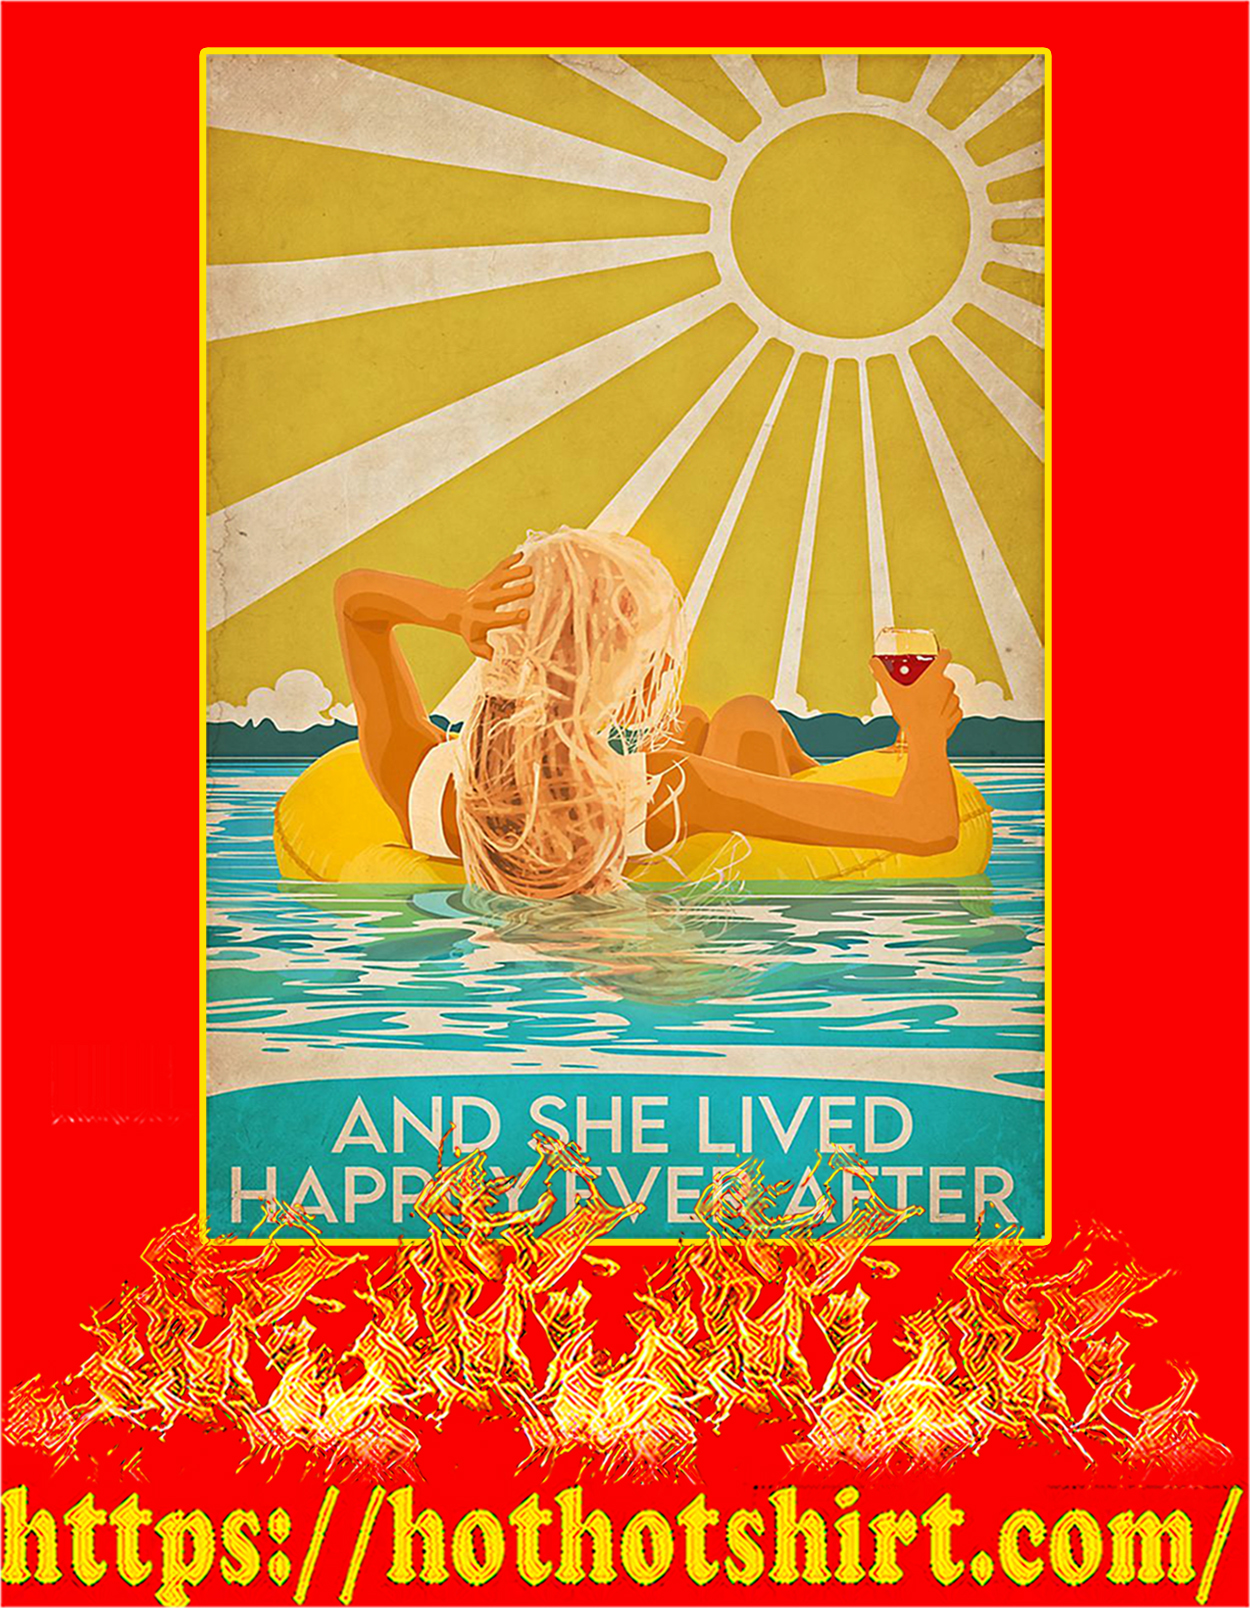 Swimming blonde and she lived happily after poster - A3